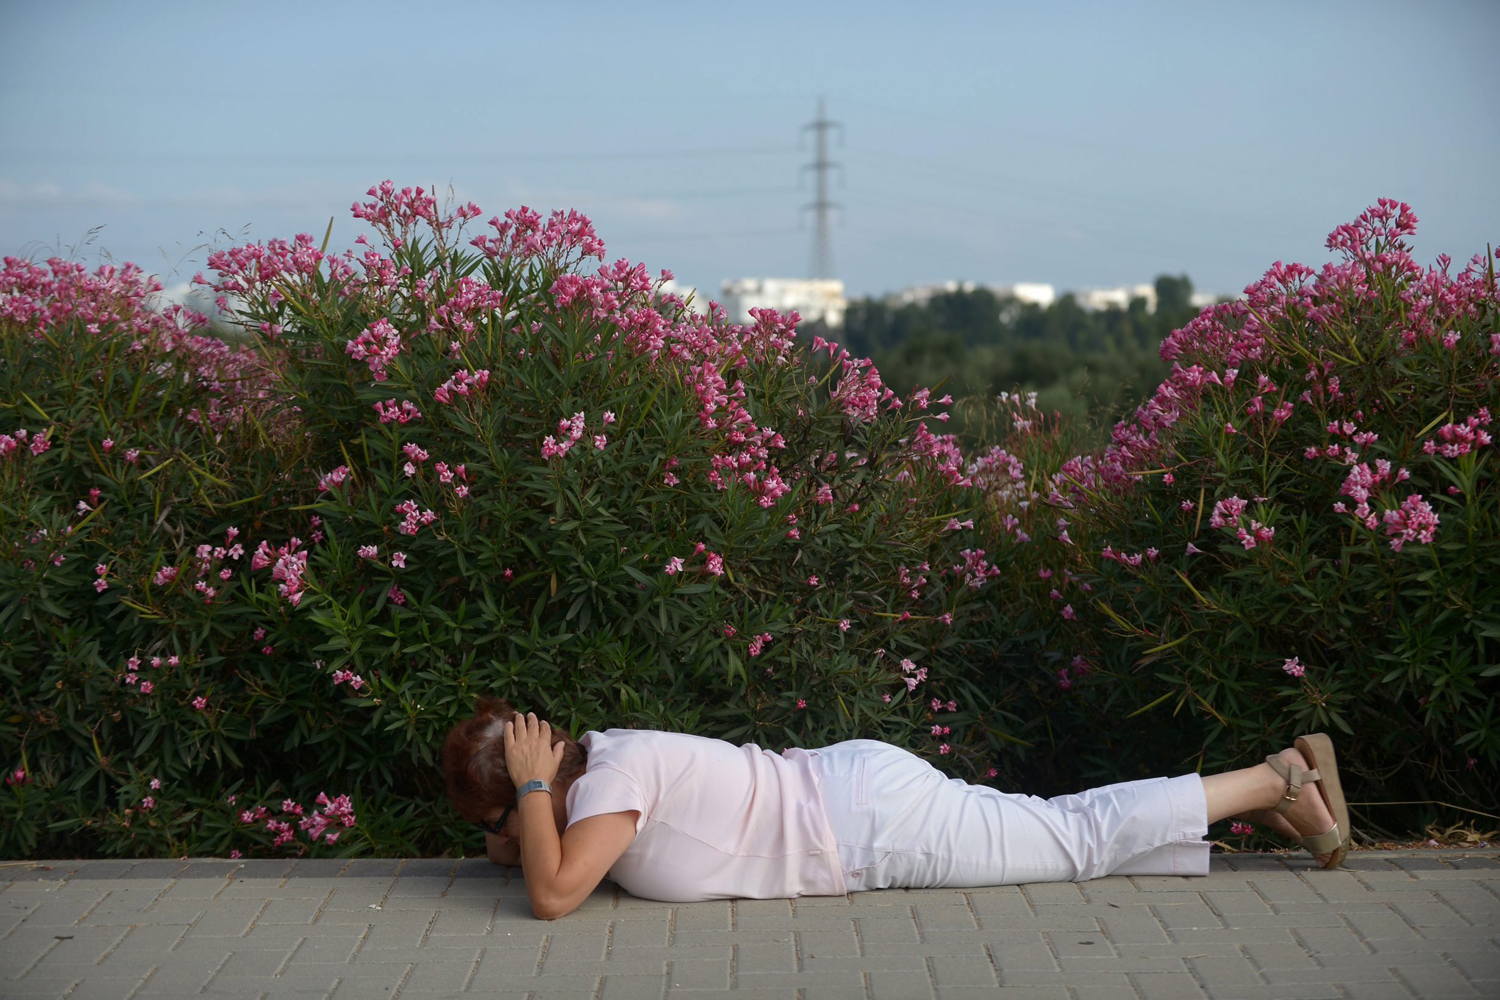 Jul. 9, 2014. An Israeli woman covers her head and lays on the ground while sirens sound in the southern city of Ashdod, Israel.